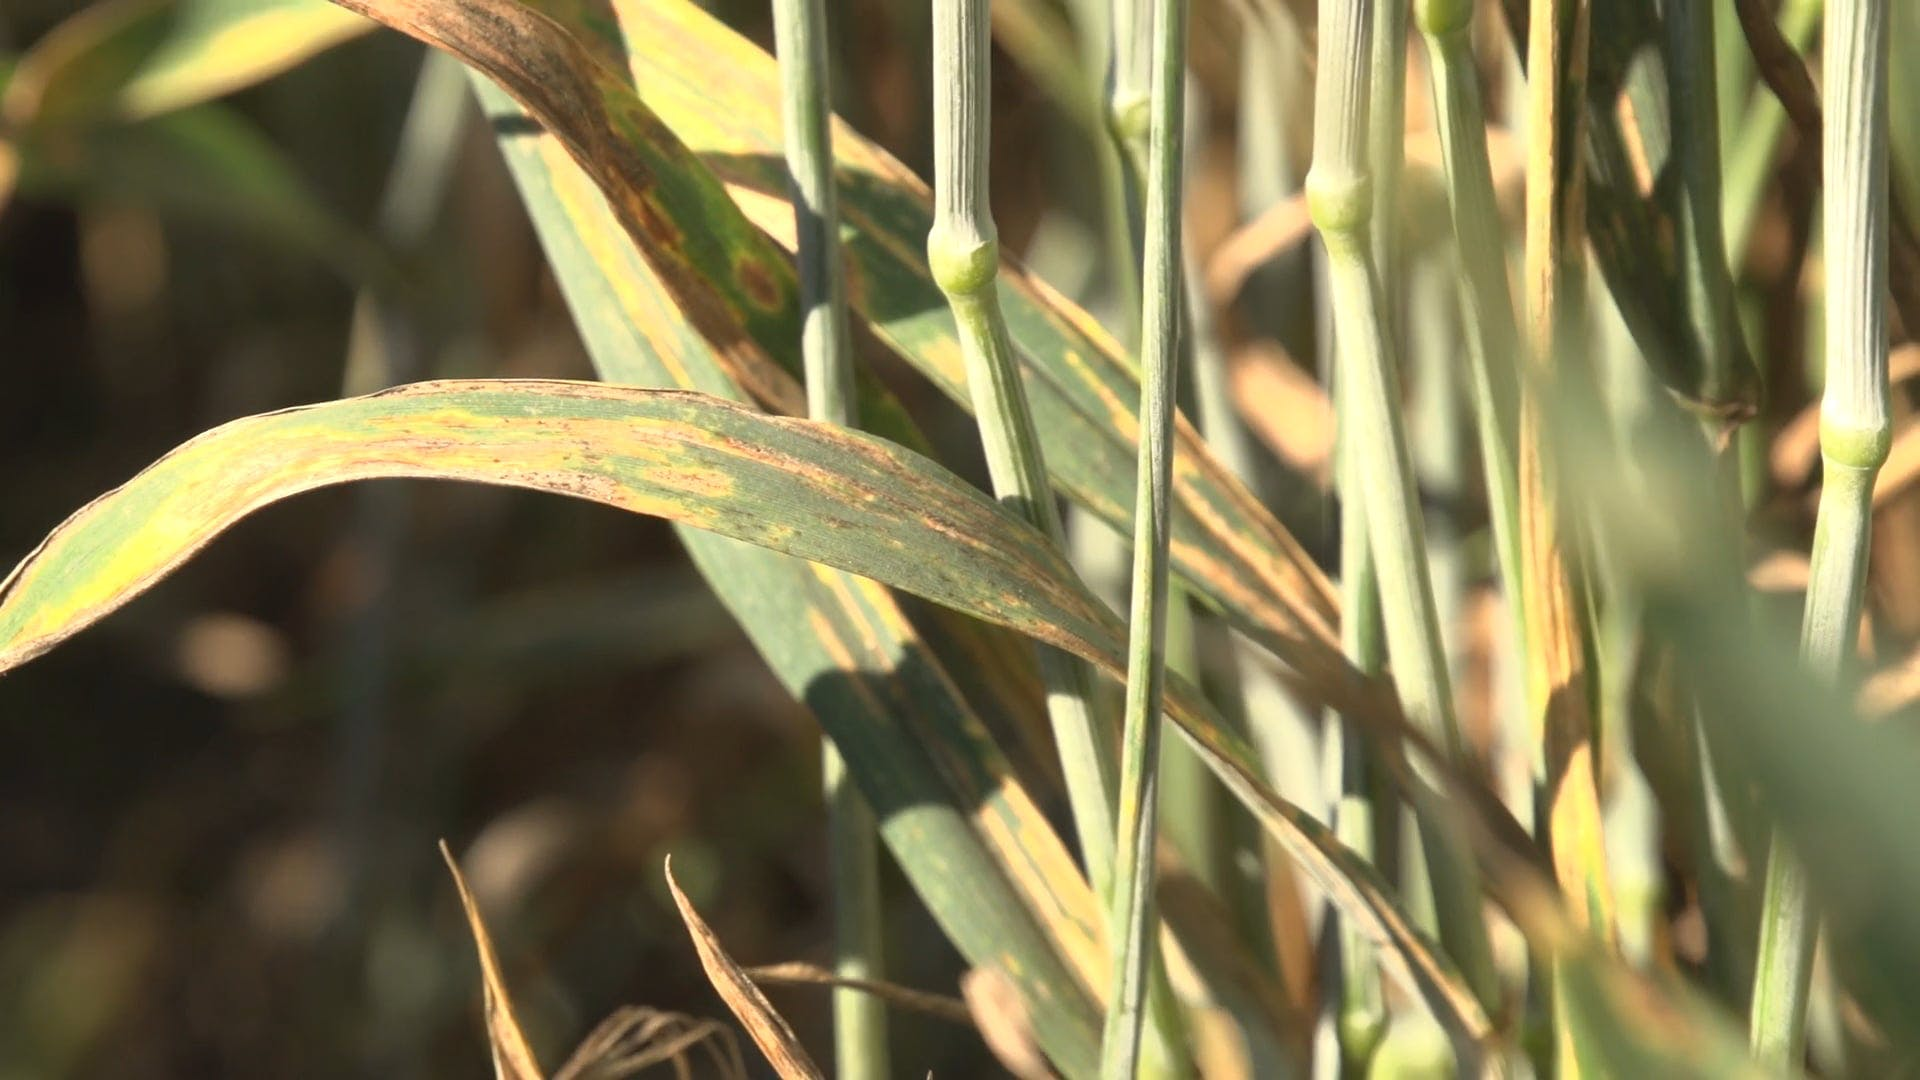 Close View Of A Wheat Plant